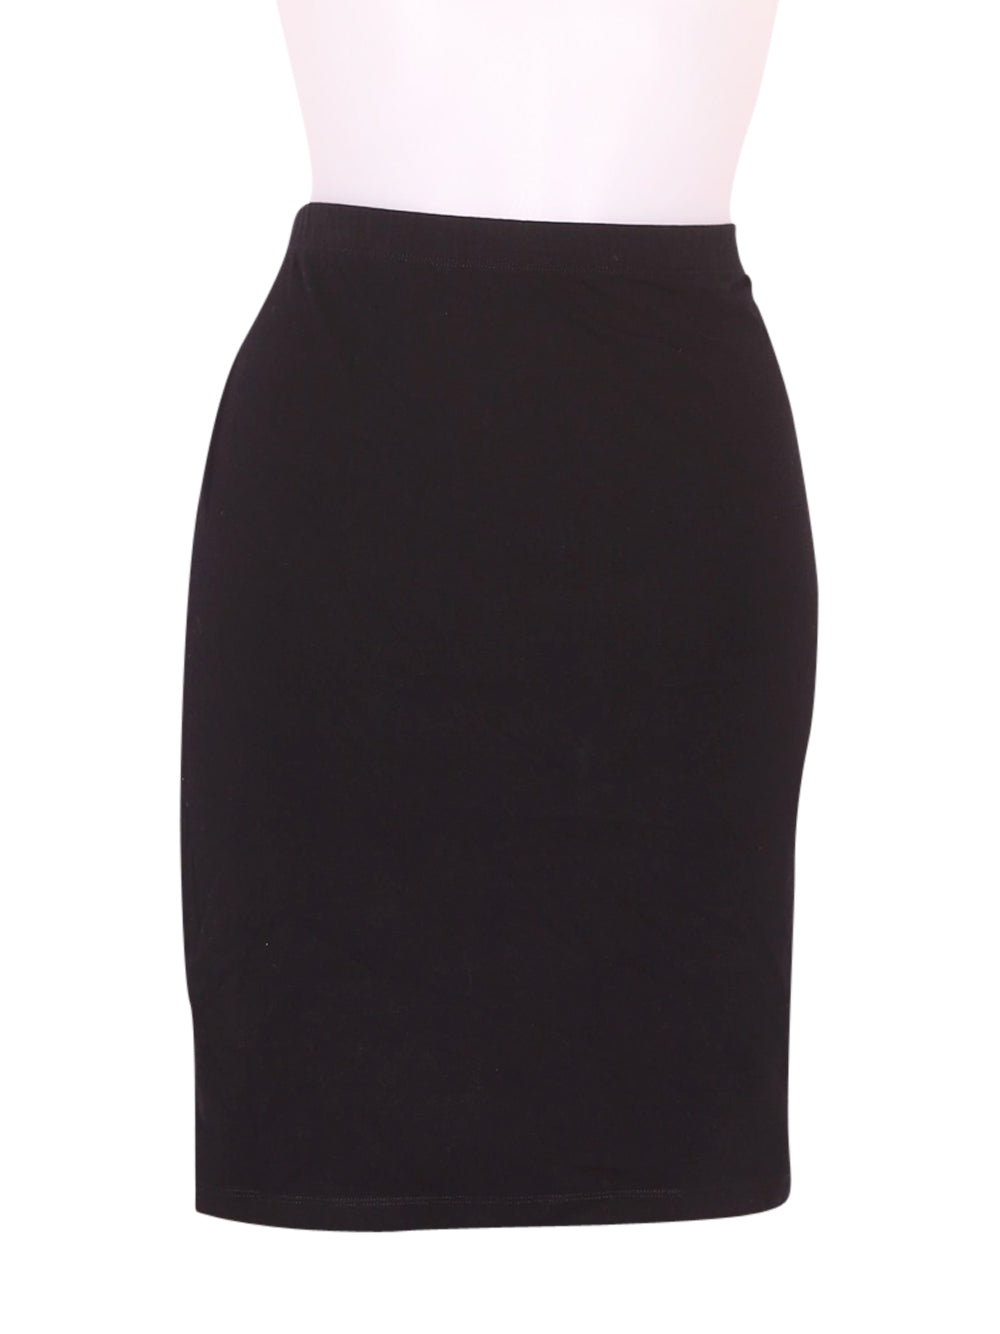 Front photo of Preloved Asos Black Woman's skirt - size 10/M